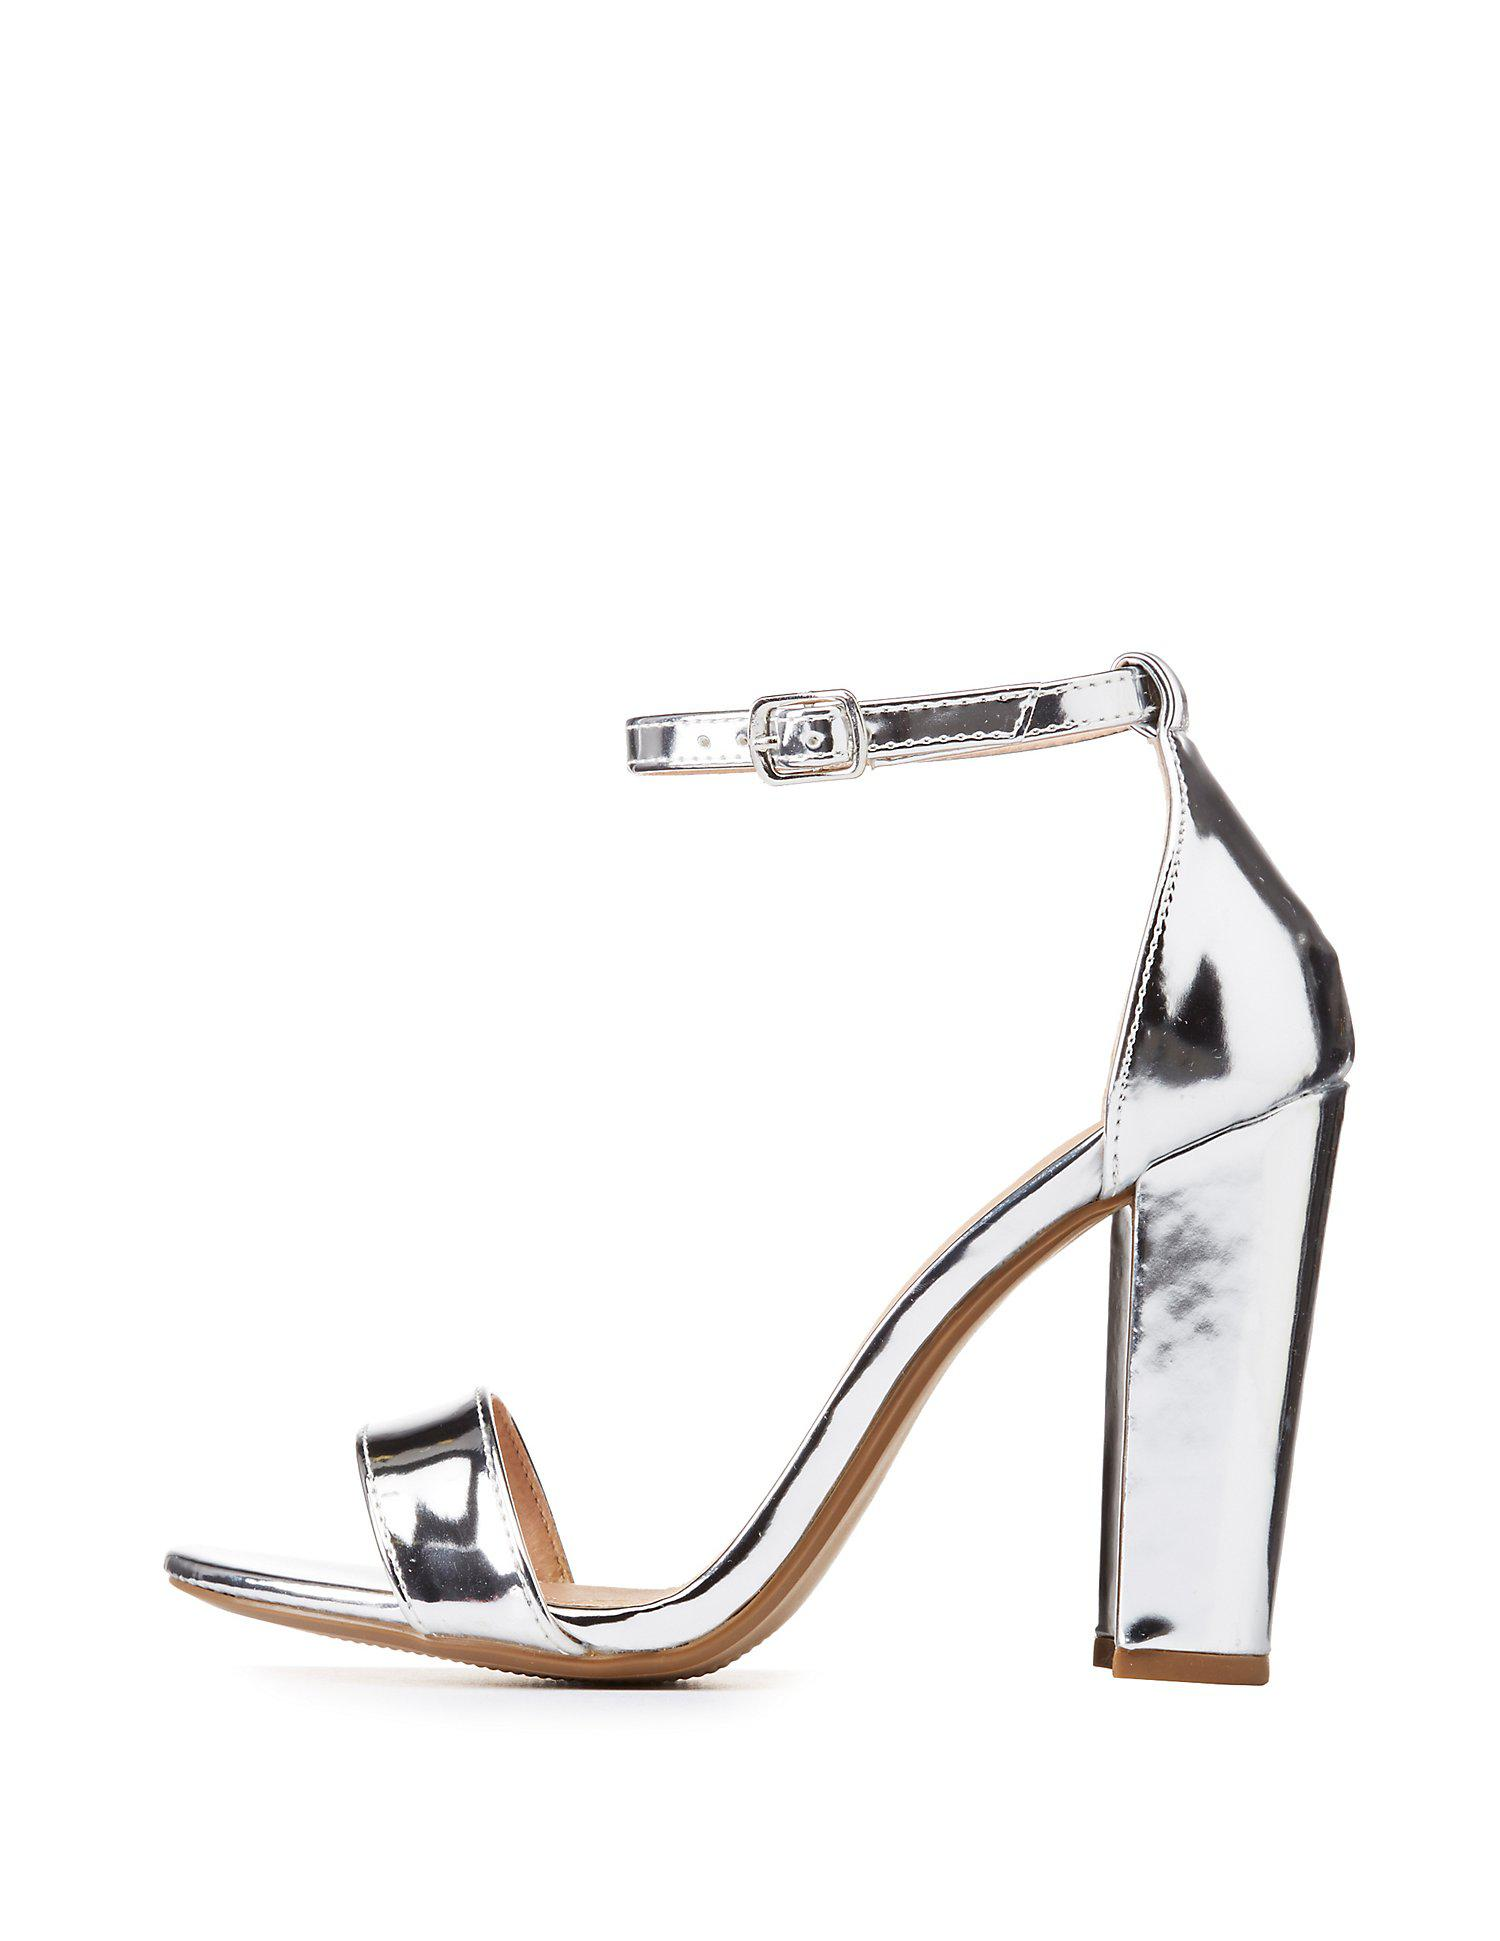 04451cbedeb Lyst - Charlotte Russe Becca Ankle Strap Heeled Sandals in Metallic ...